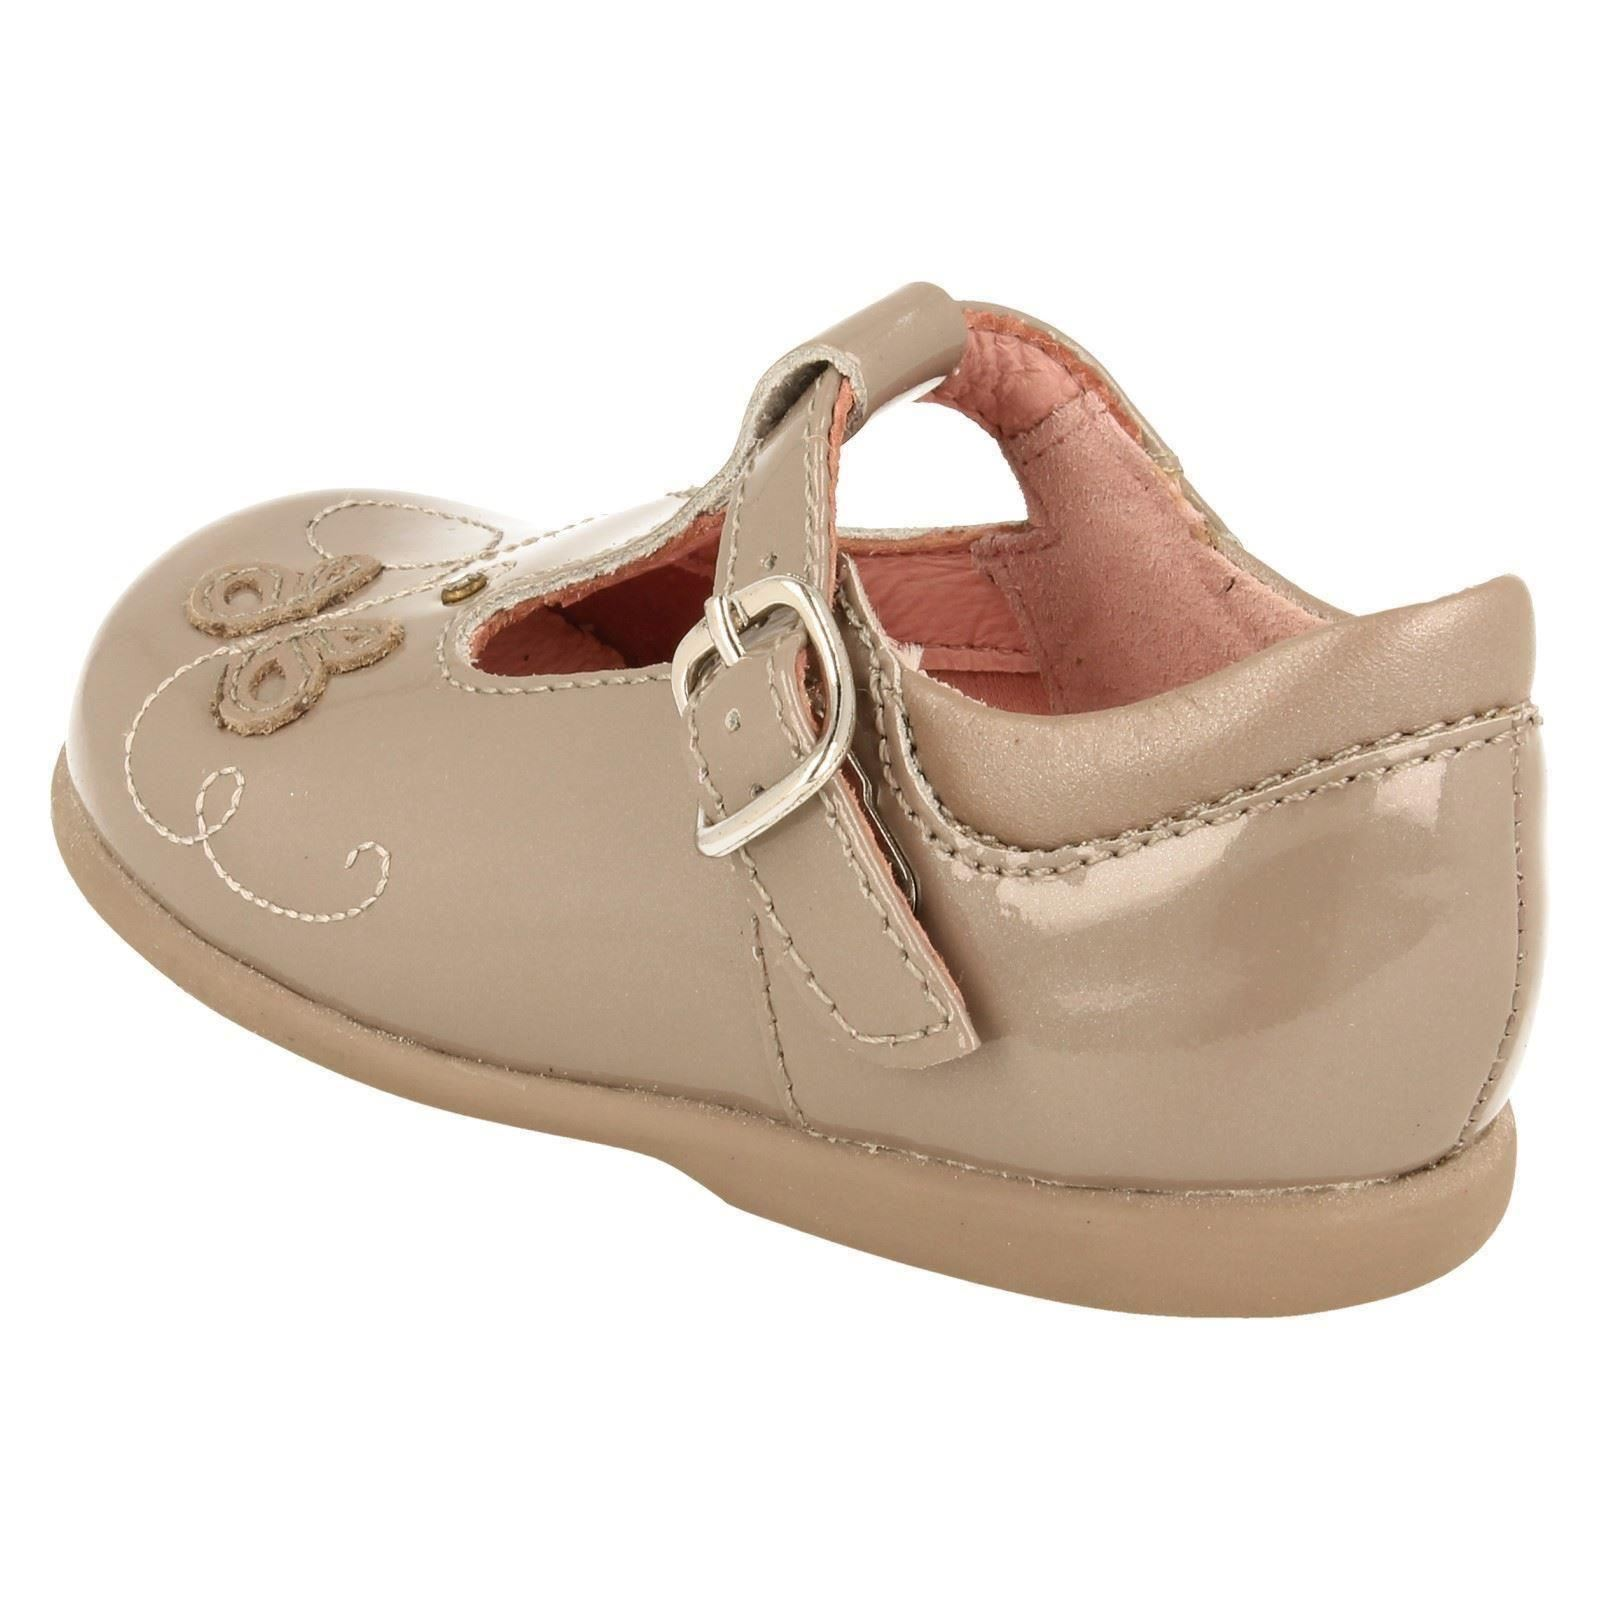 Girls Startrite shoes Style- Pixie £26.00